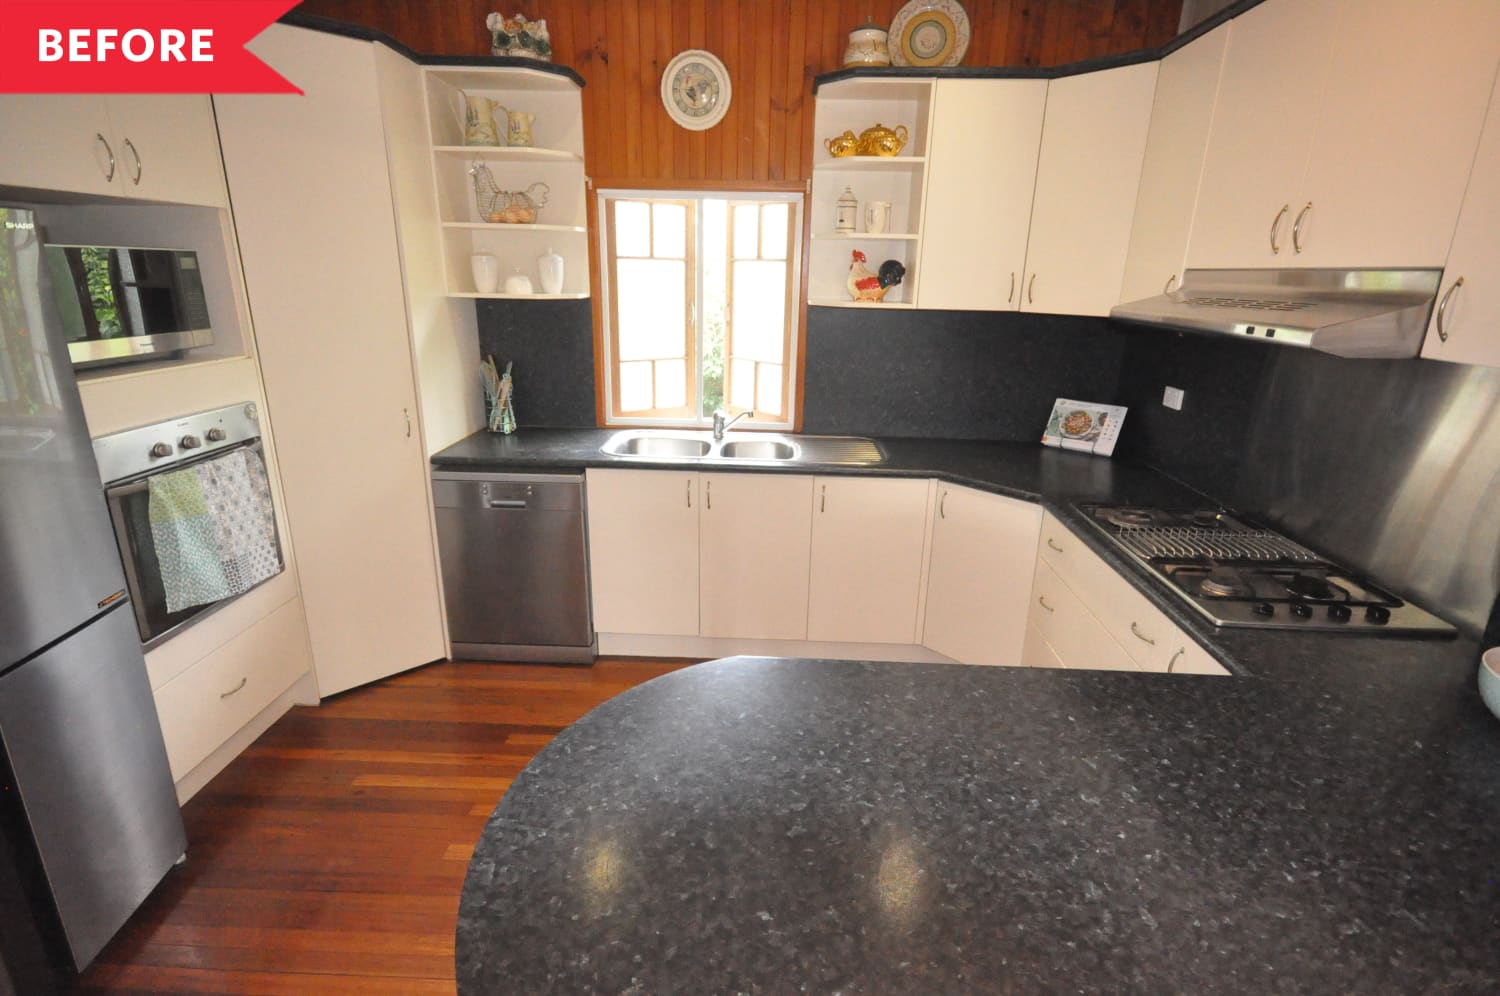 Before & After: This Bland Kitchen Gets Some Charm and Color for Just $860